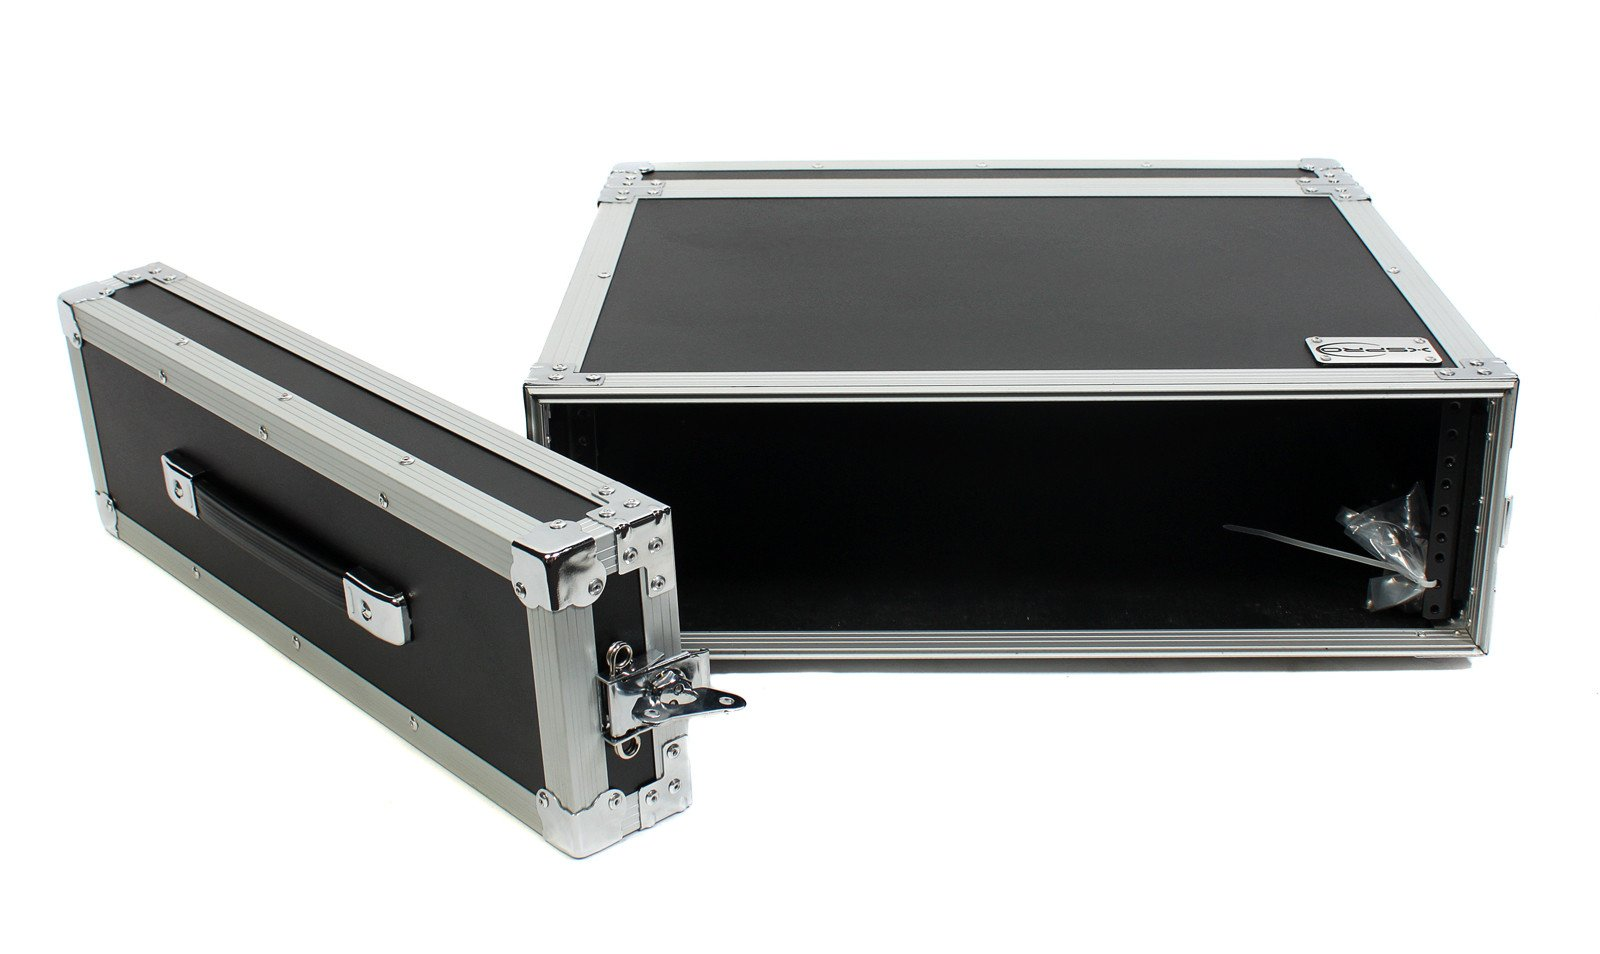 "XSPRO XS3U-14 3 Space ATA Effects Rack Flight Case Front Back Rails - 19"" Wide"